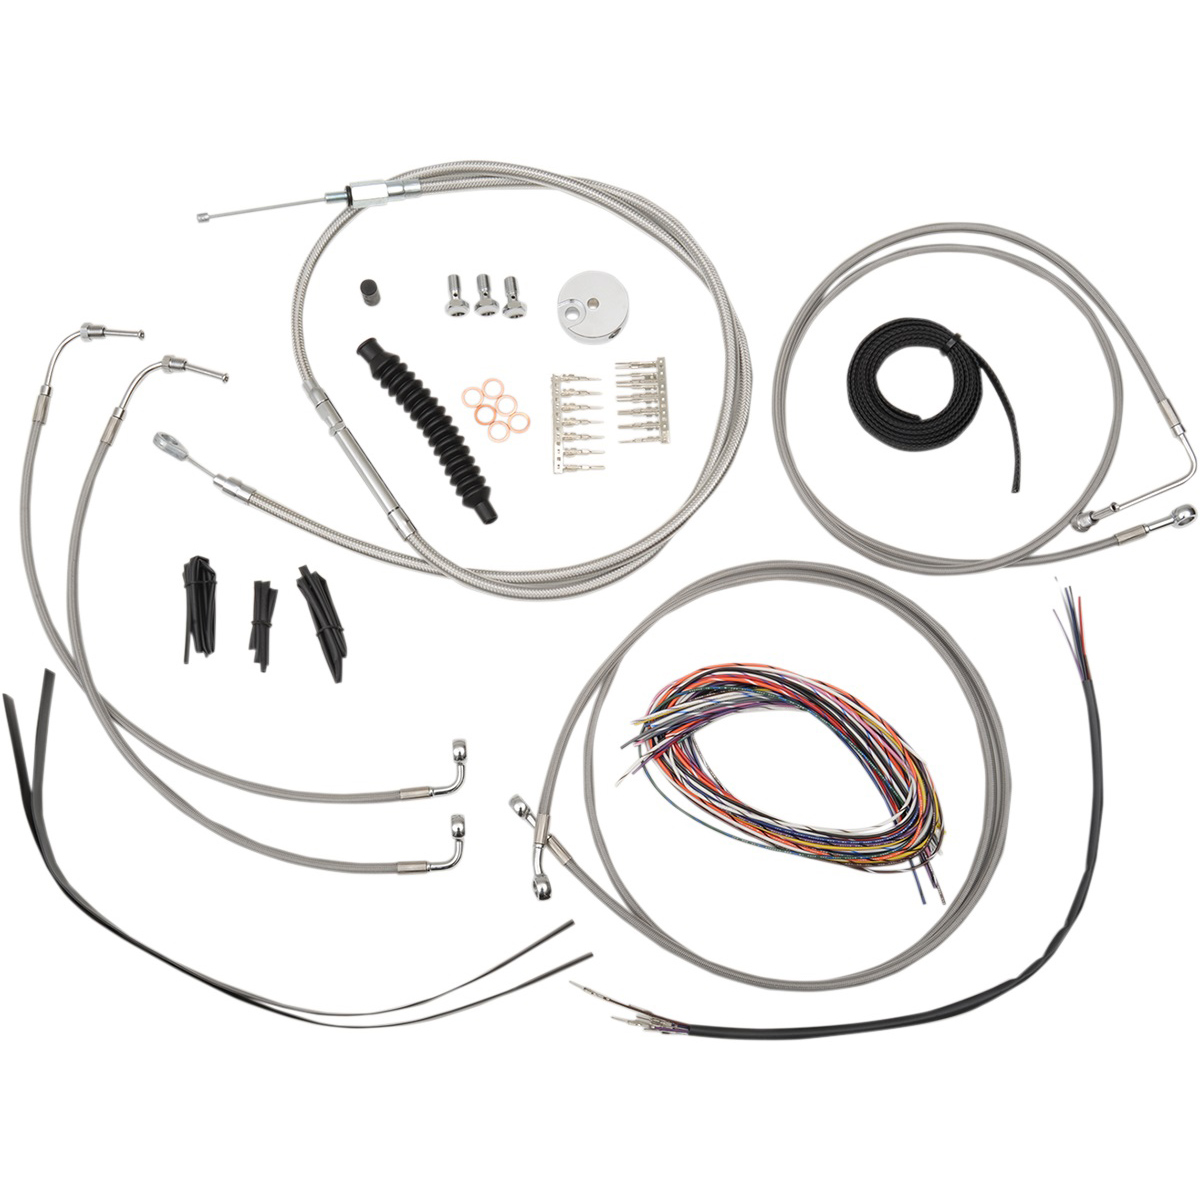 LA Choppers Stainless Complete Cable/Line/Wiring Handlebar Kit for Mini Ape Bars on Models without ABS